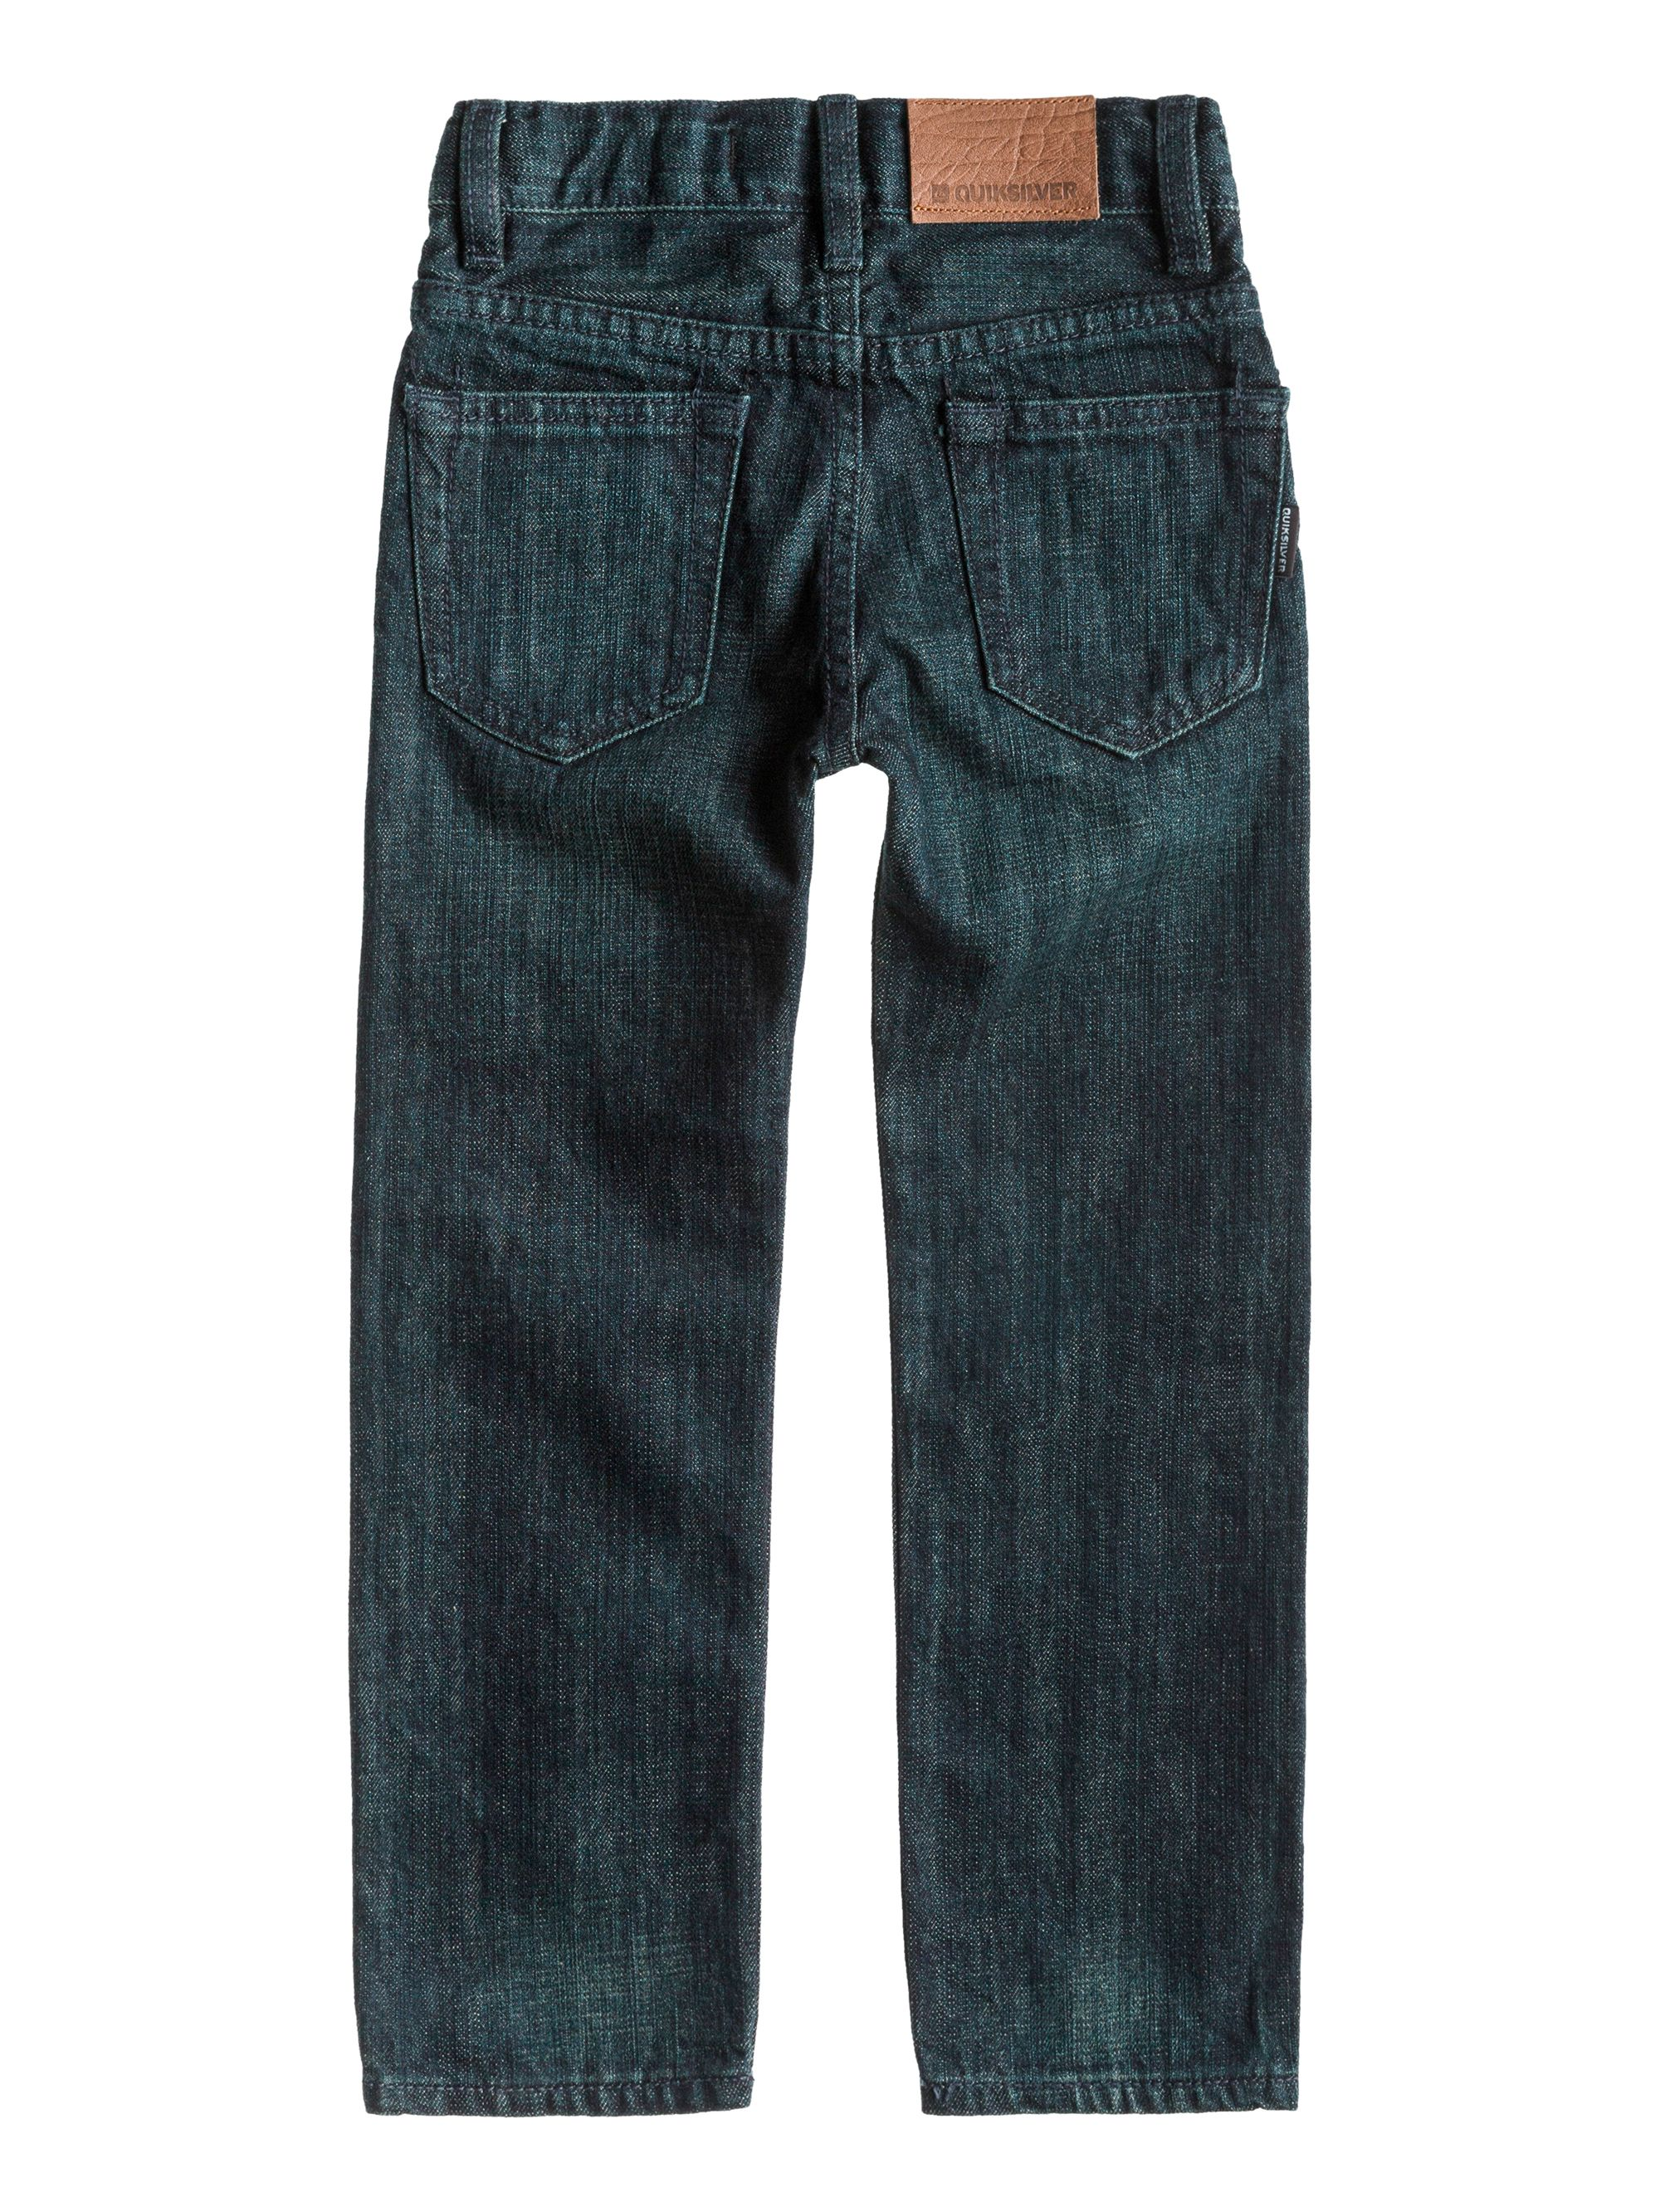 Boys keenate aged jeans